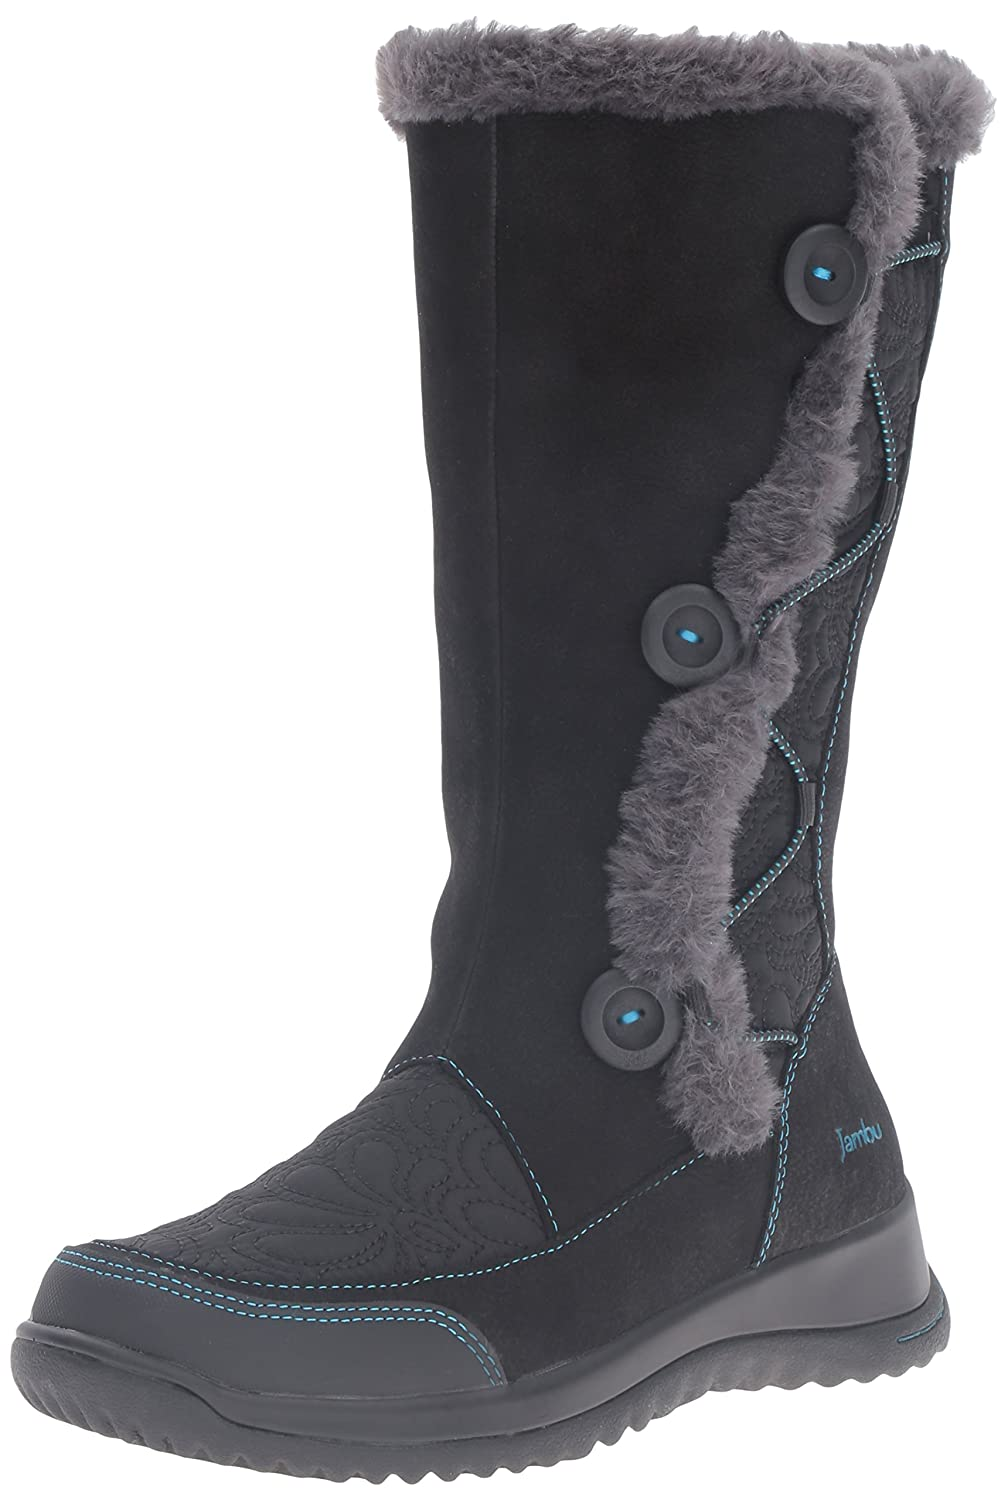 Jambu Women's Baltic Snow Boot: Buy Online at Low Prices in India -  Amazon.in